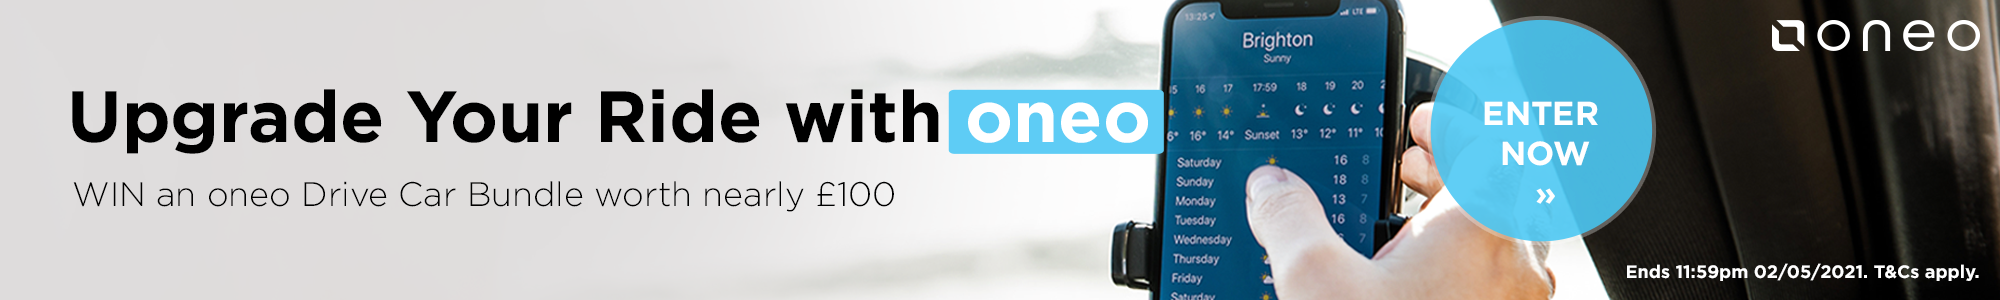 Win an oneo car bundle worth nearly £100